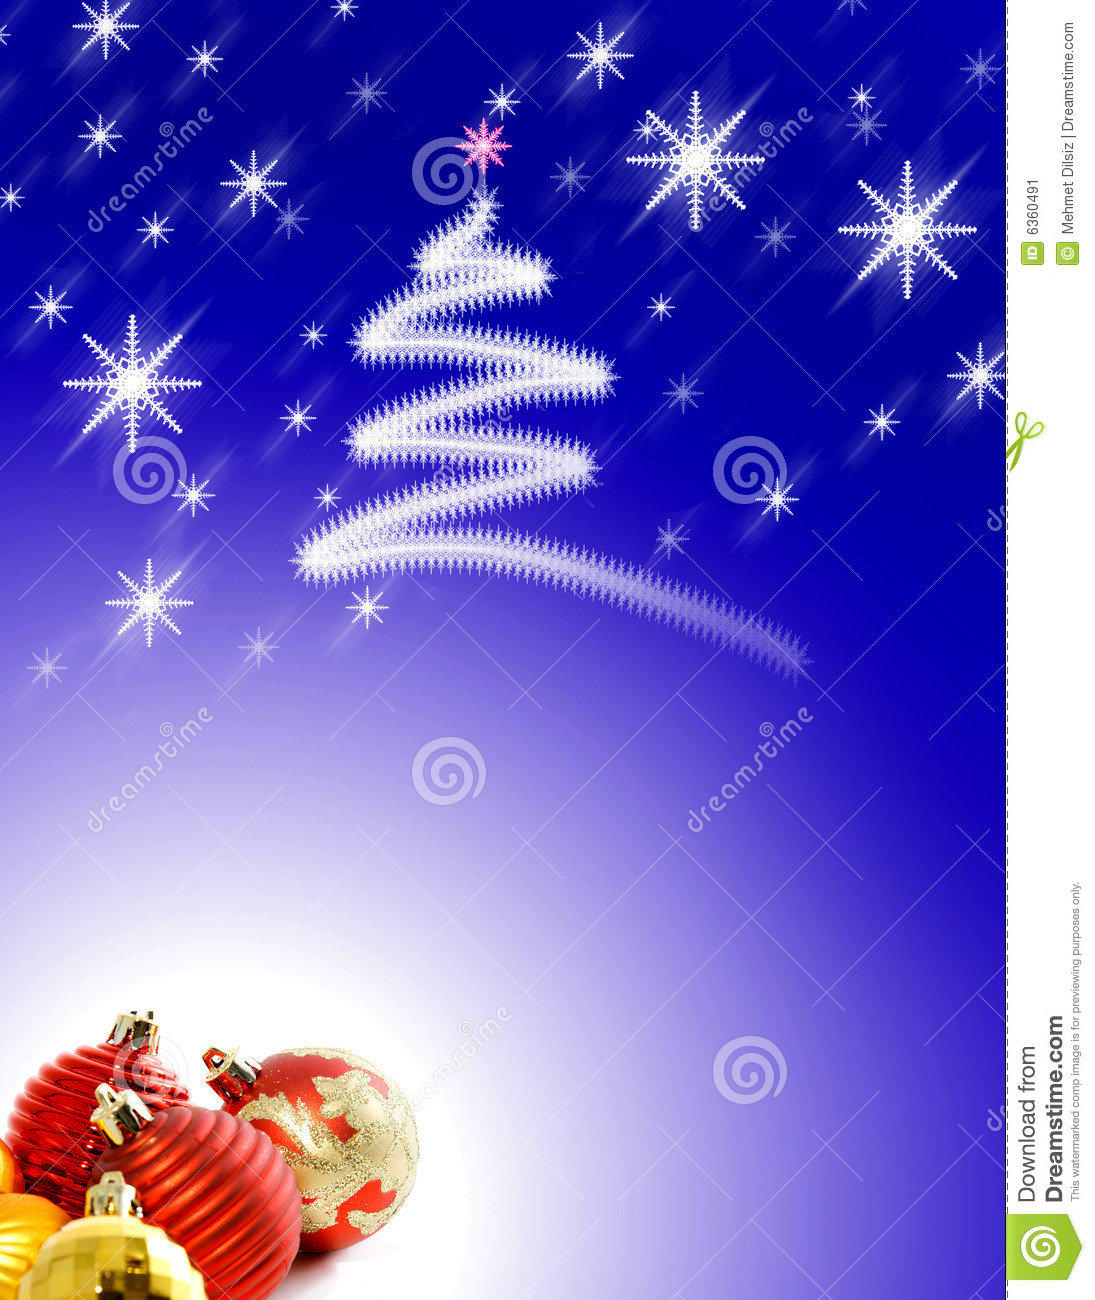 Christmas Background With Ornaments Royalty-Free Stock ...